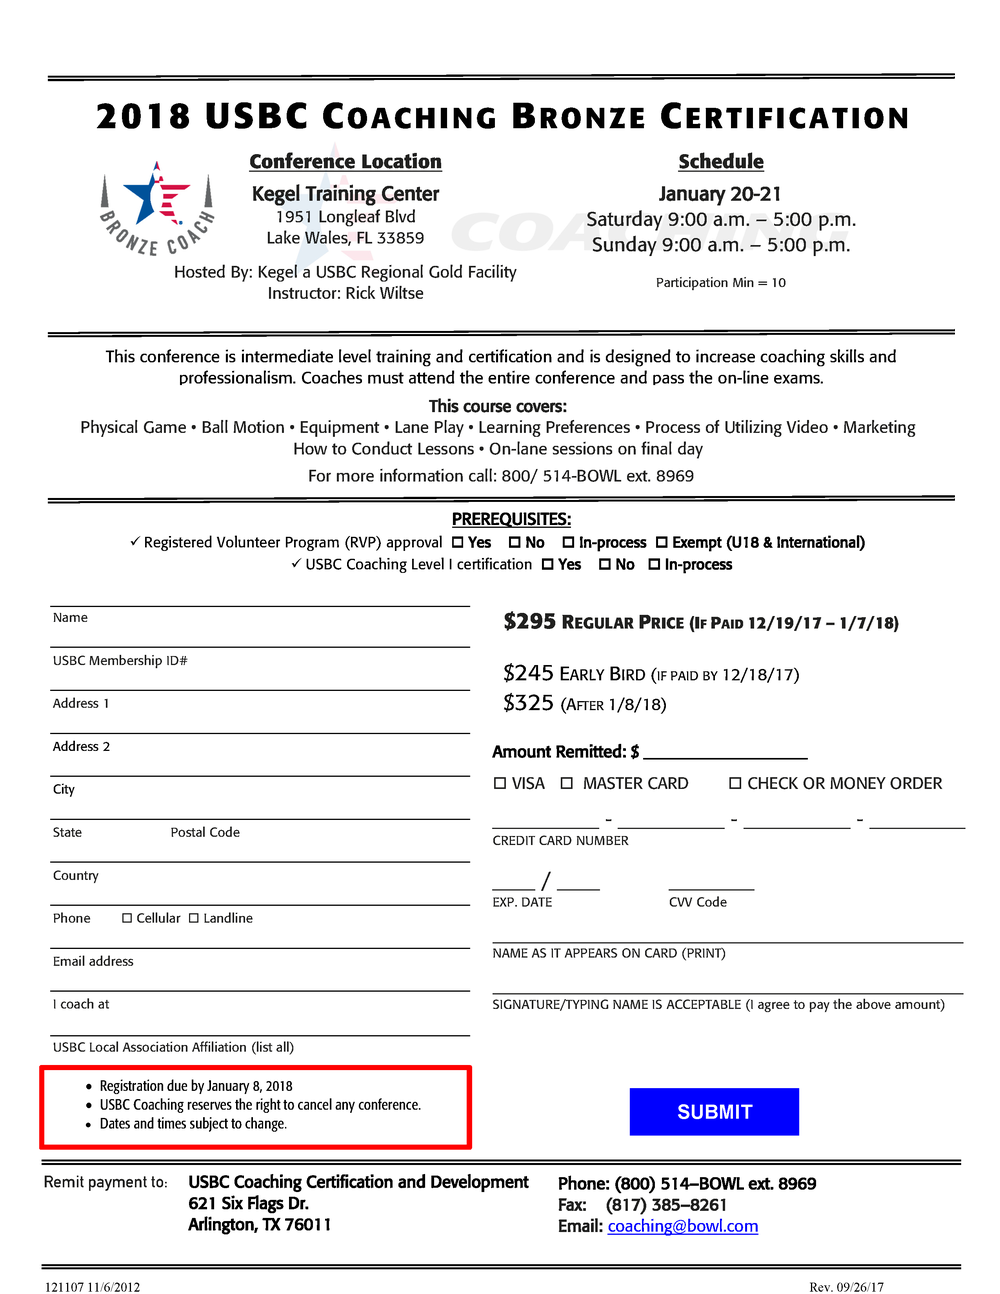 Usbc bronze certification ktc kegel training center posted in coaching certification 1betcityfo Image collections